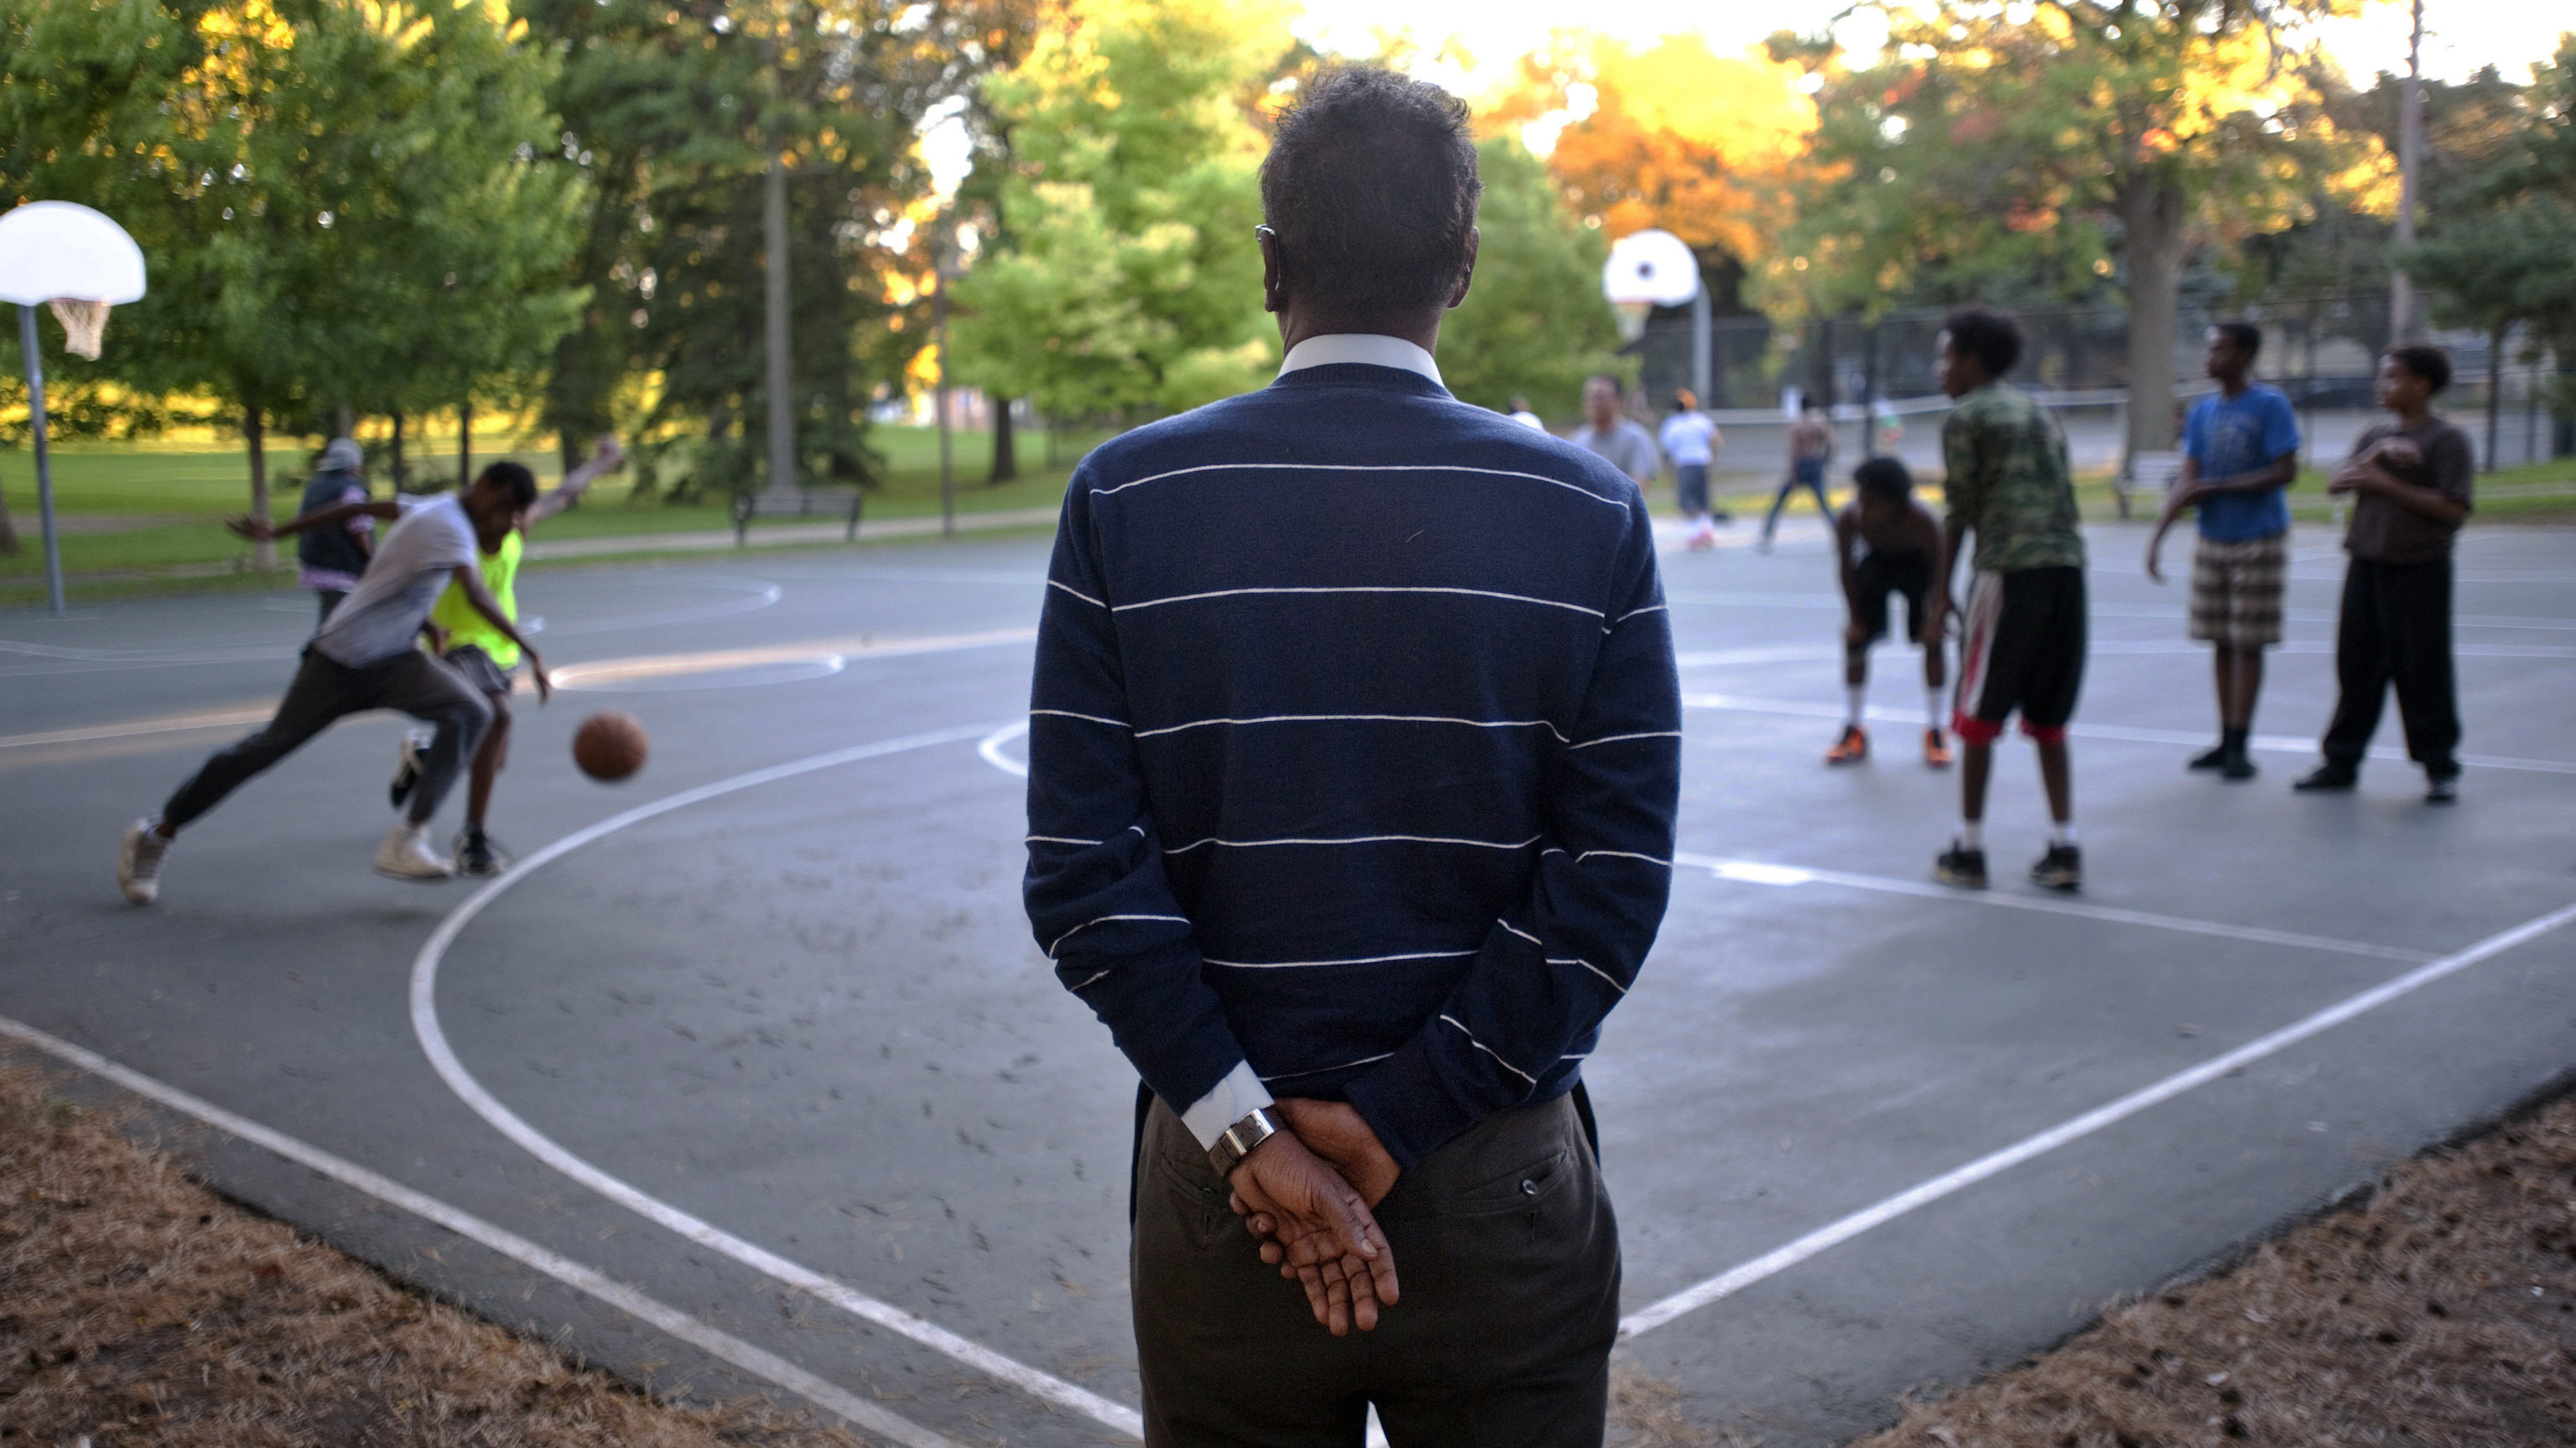 In this Monday, Sept. 22, 2014 photo, Abdirizak Bihi, right, executive director of the Somali Education and Social Advocacy Center, watches kids play basketball at Currie Park in Minneapolis, near a large Somali community in the Cedar Riverside neighborhood. While Bihi strolls through the neighborhood parks, he is on the lookout for anyone who might be trying to recruit the city's young Somalis to join jihad in Syria.